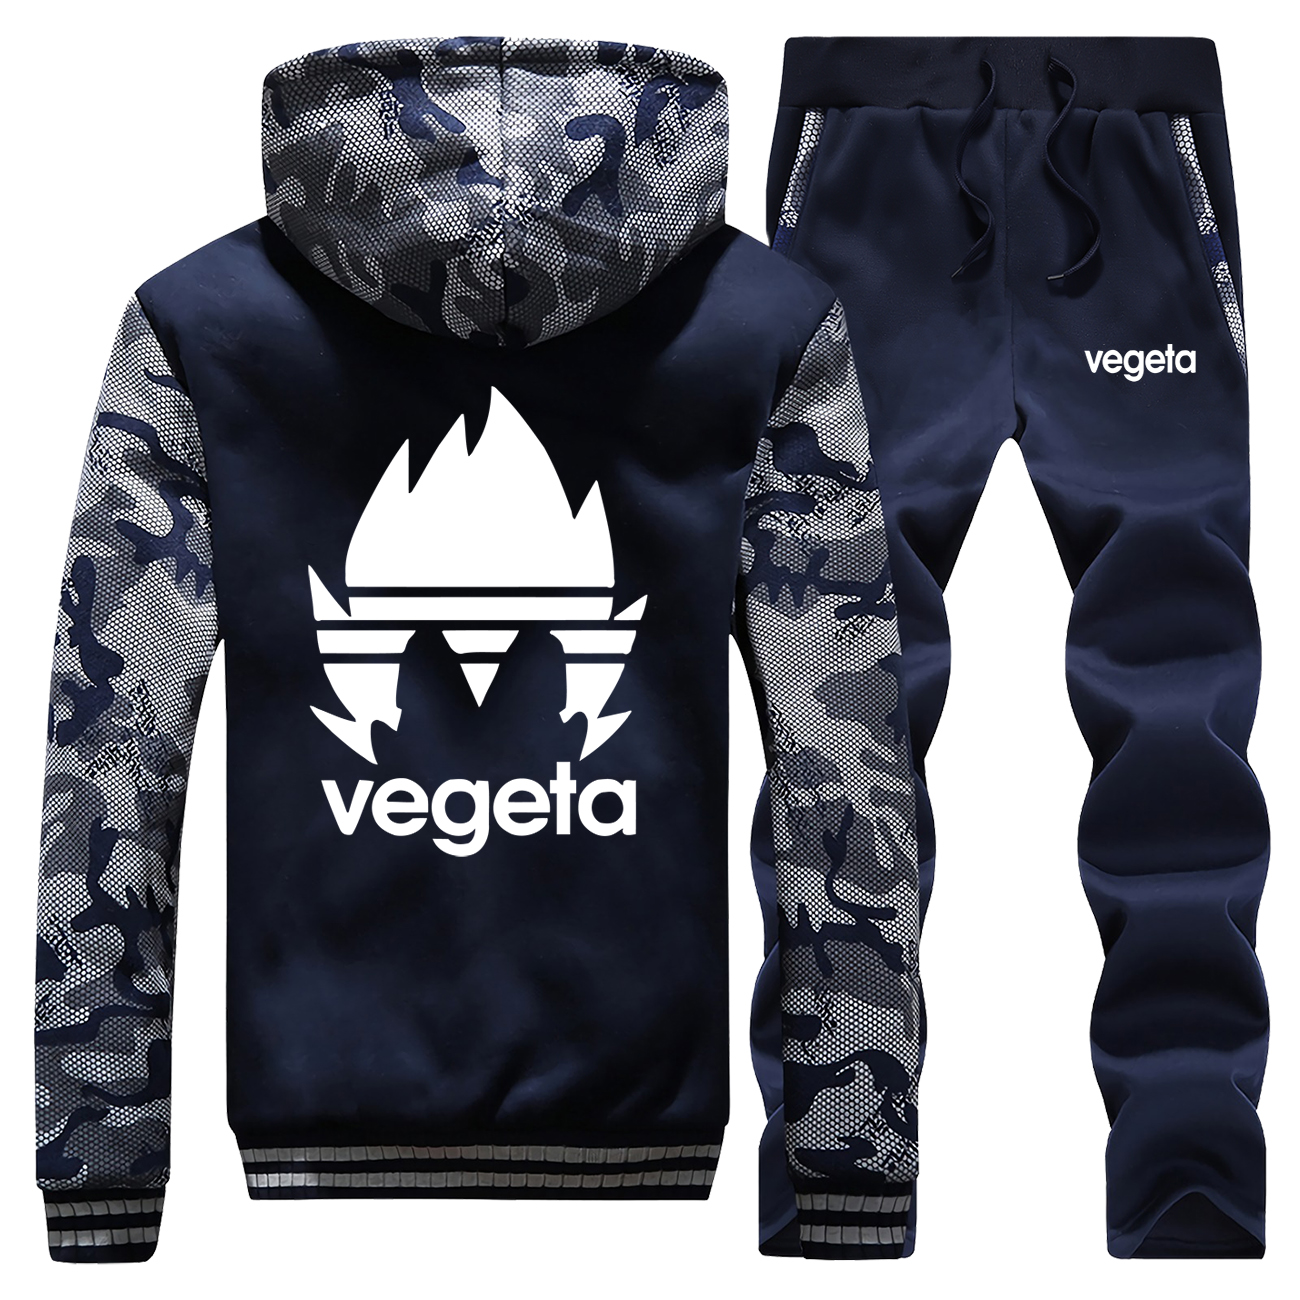 Japanese Anime Dragon Ball Z Hoodies Cool Saiyan Vegeta Camo Hoodies Pant Sets Mens Fashion Sweatshirt Casual Fleece Sportswear